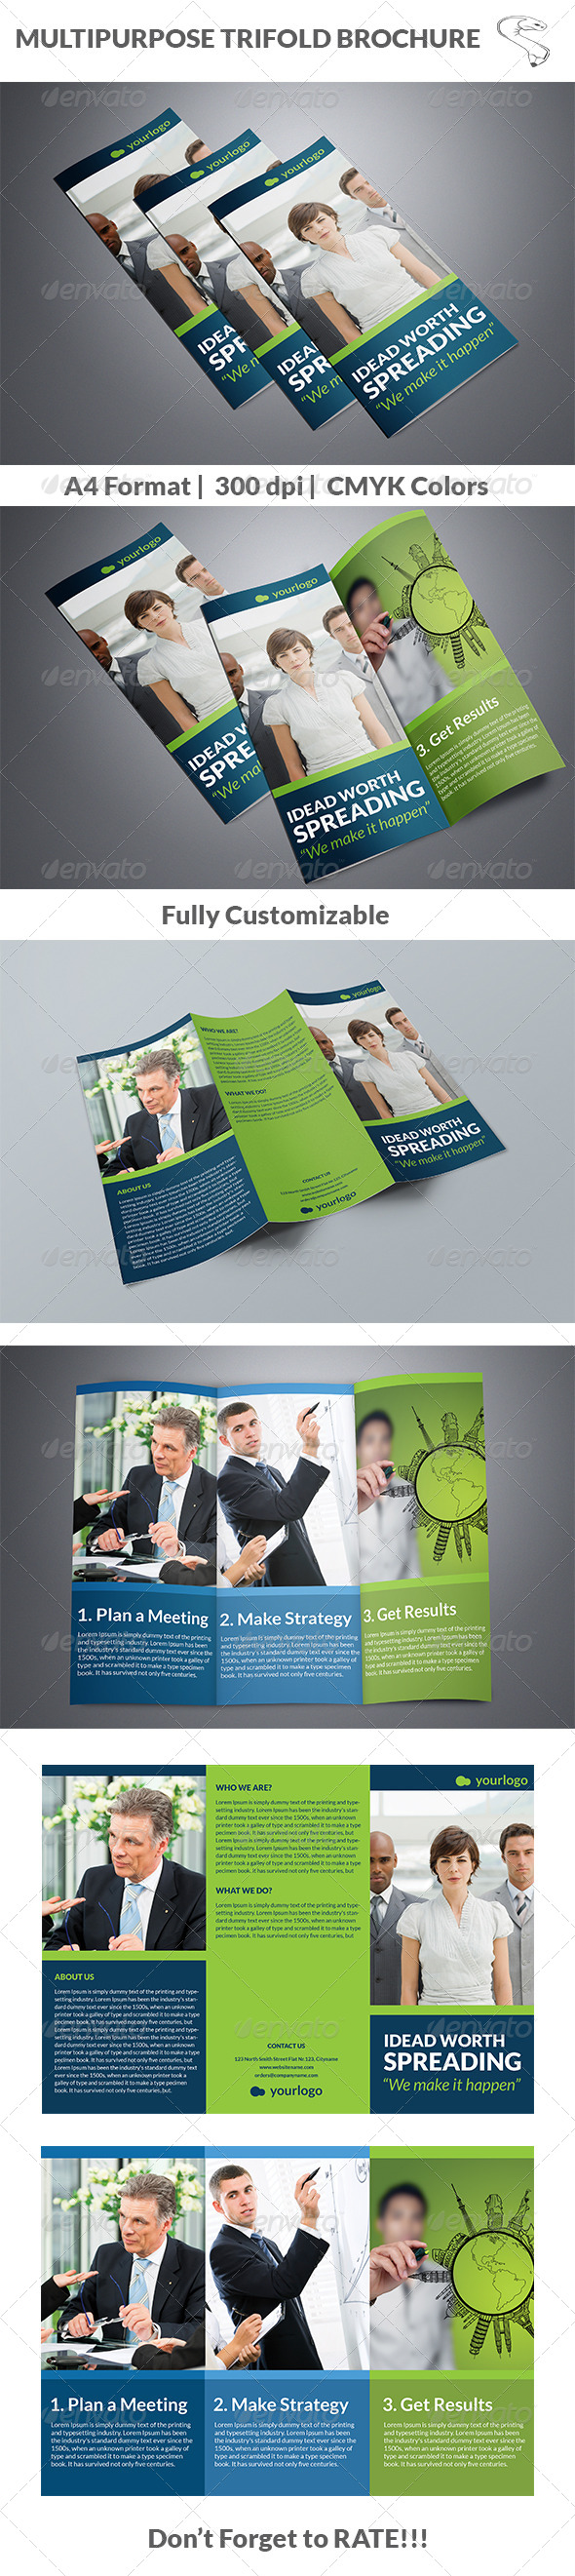 GraphicRiver Multipurpose Trifold Brochure 5620630